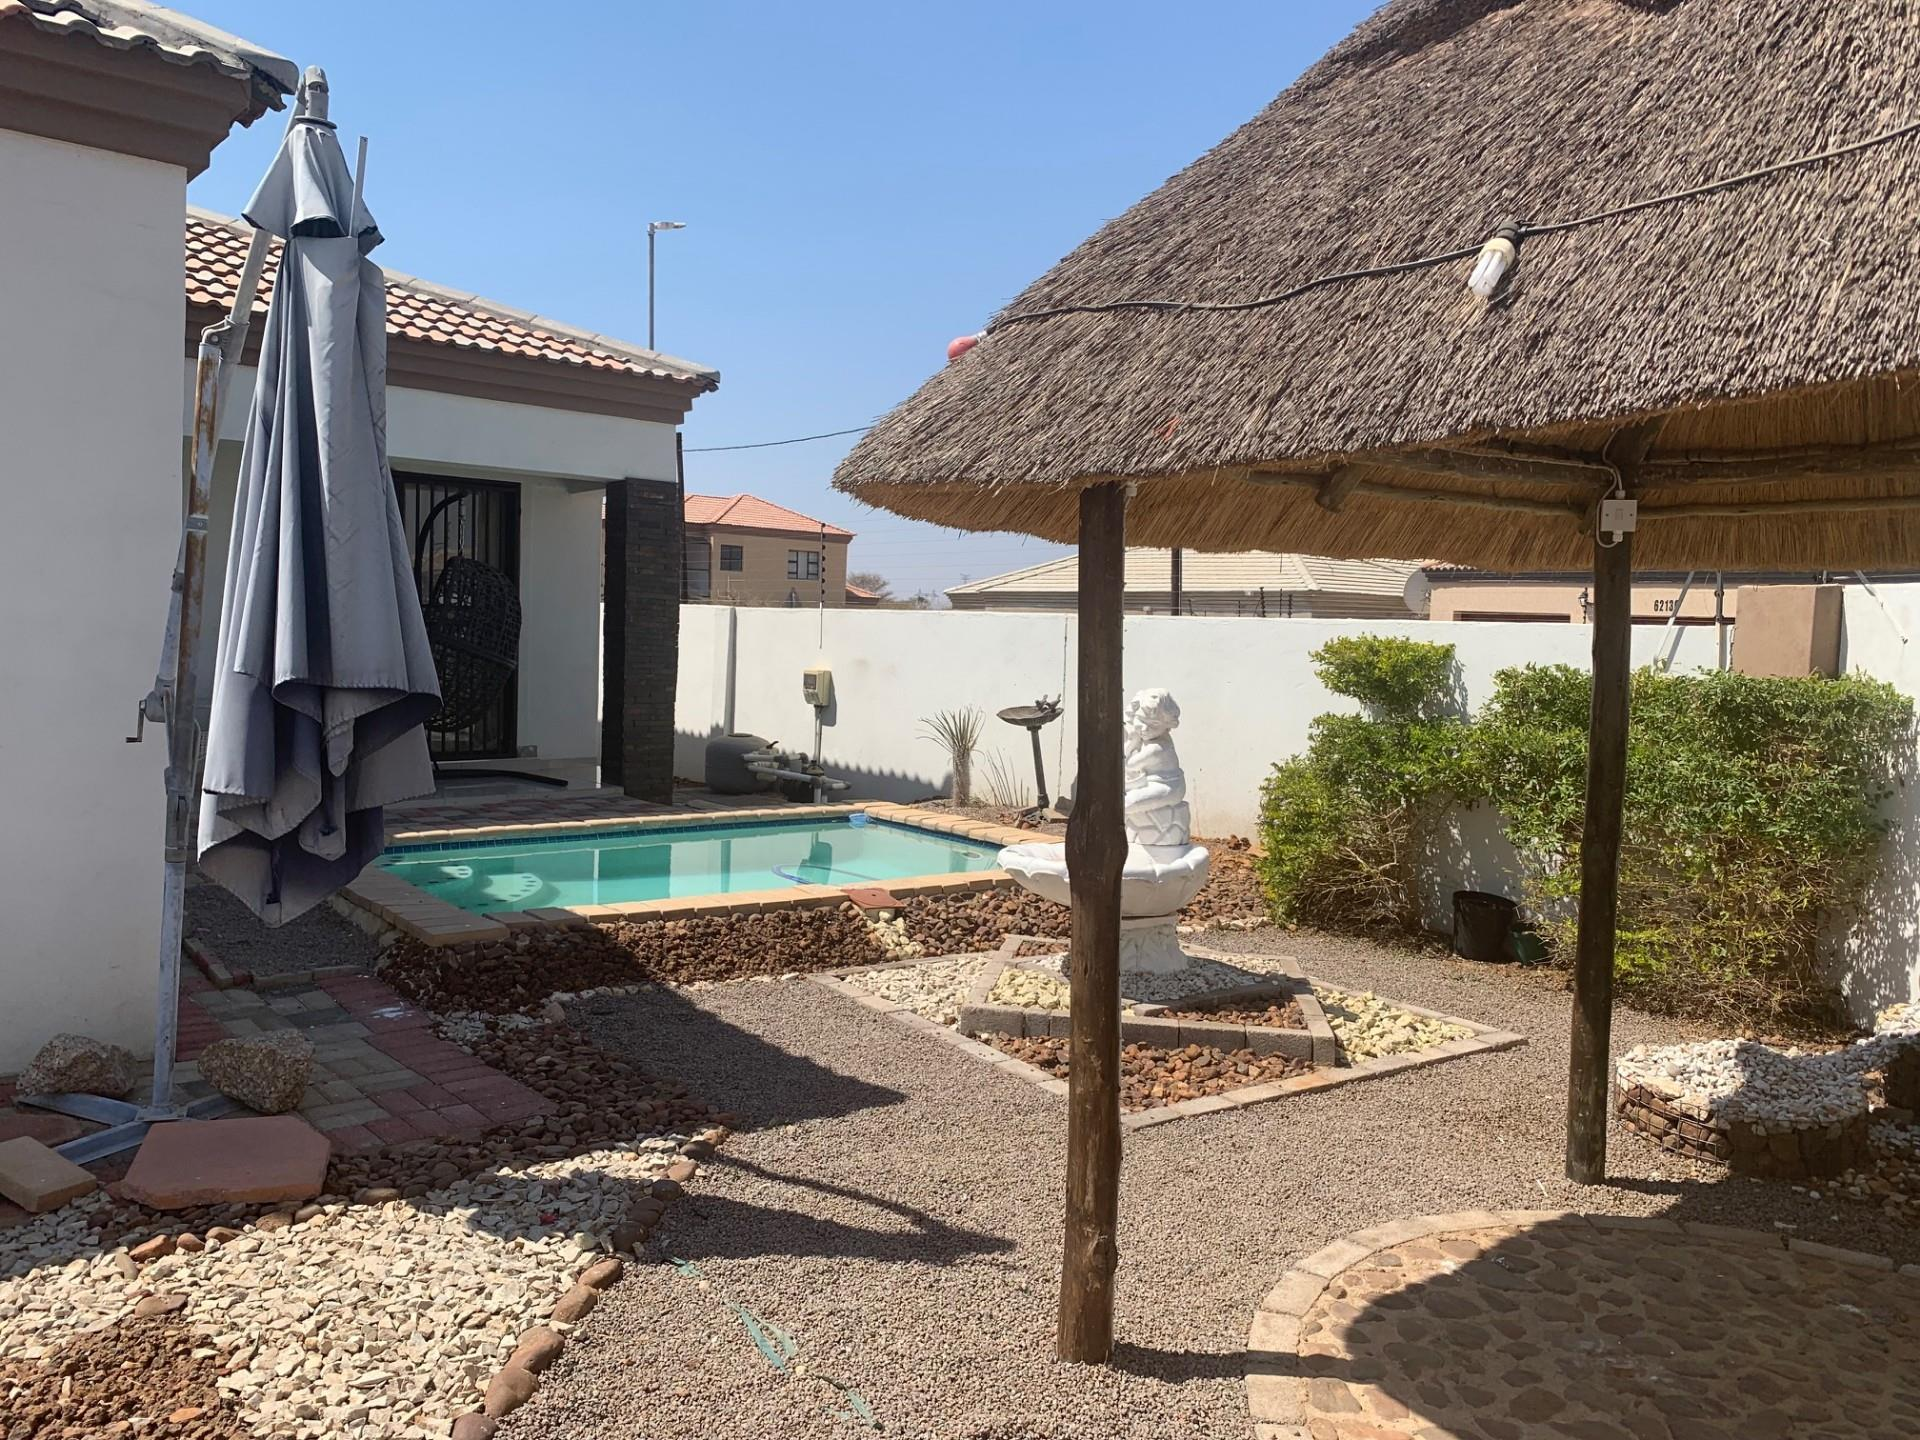 3 Bedroom House For Sale in Tsholofelo East